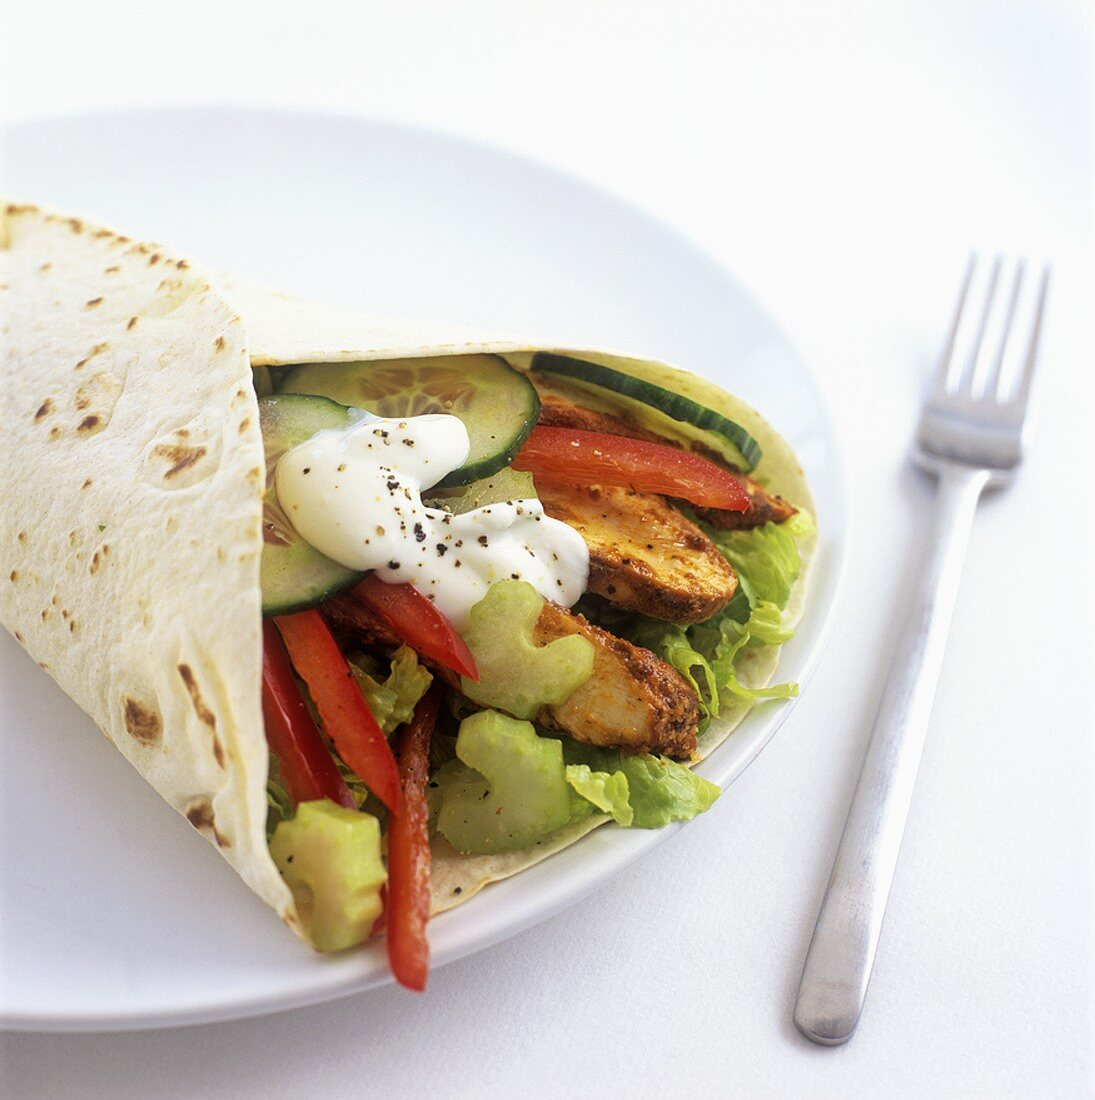 Chicken tikka wrap (made with store-bought products)